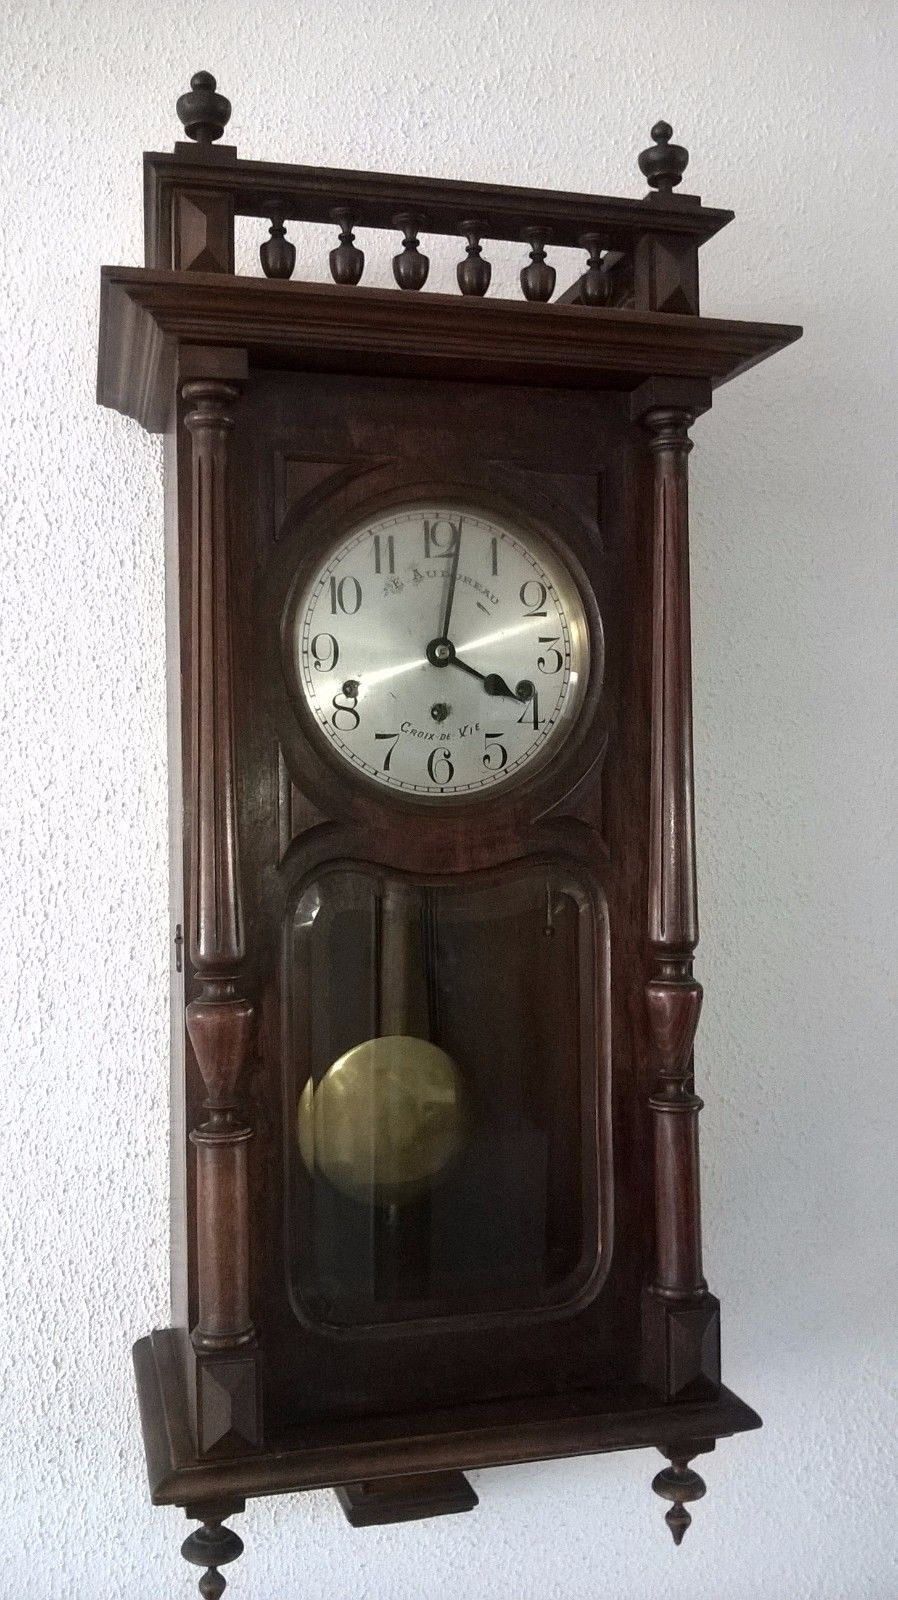 0001 antique german kienzle westminster chime wall clock 0001 antique german kienzle westminster chime wall clock amipublicfo Image collections